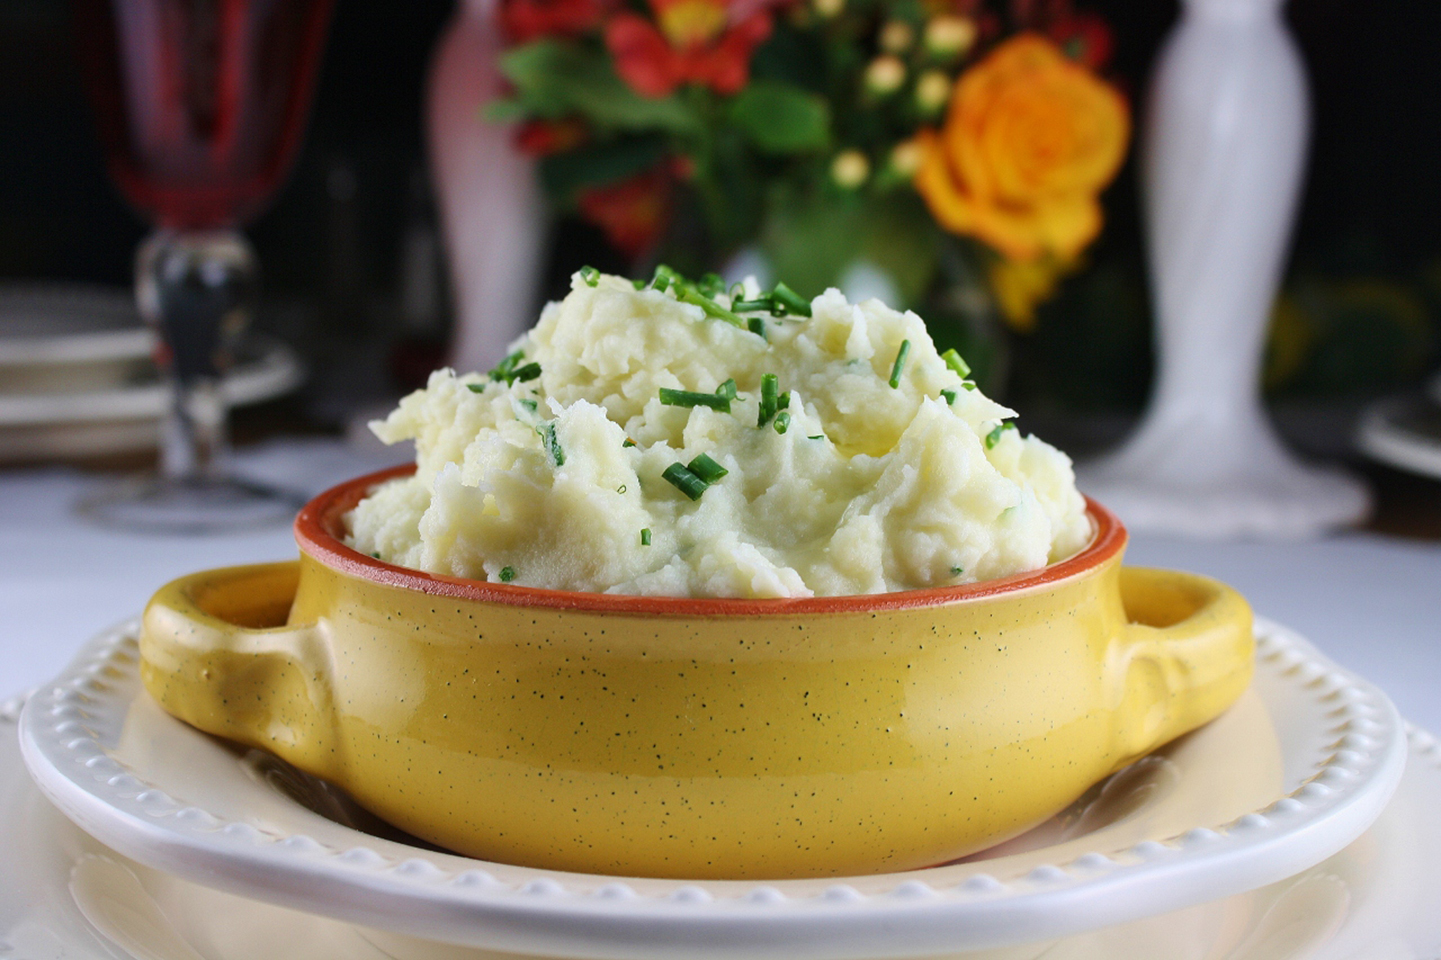 Roasted Garlic Parmesan Mashed Potatoes